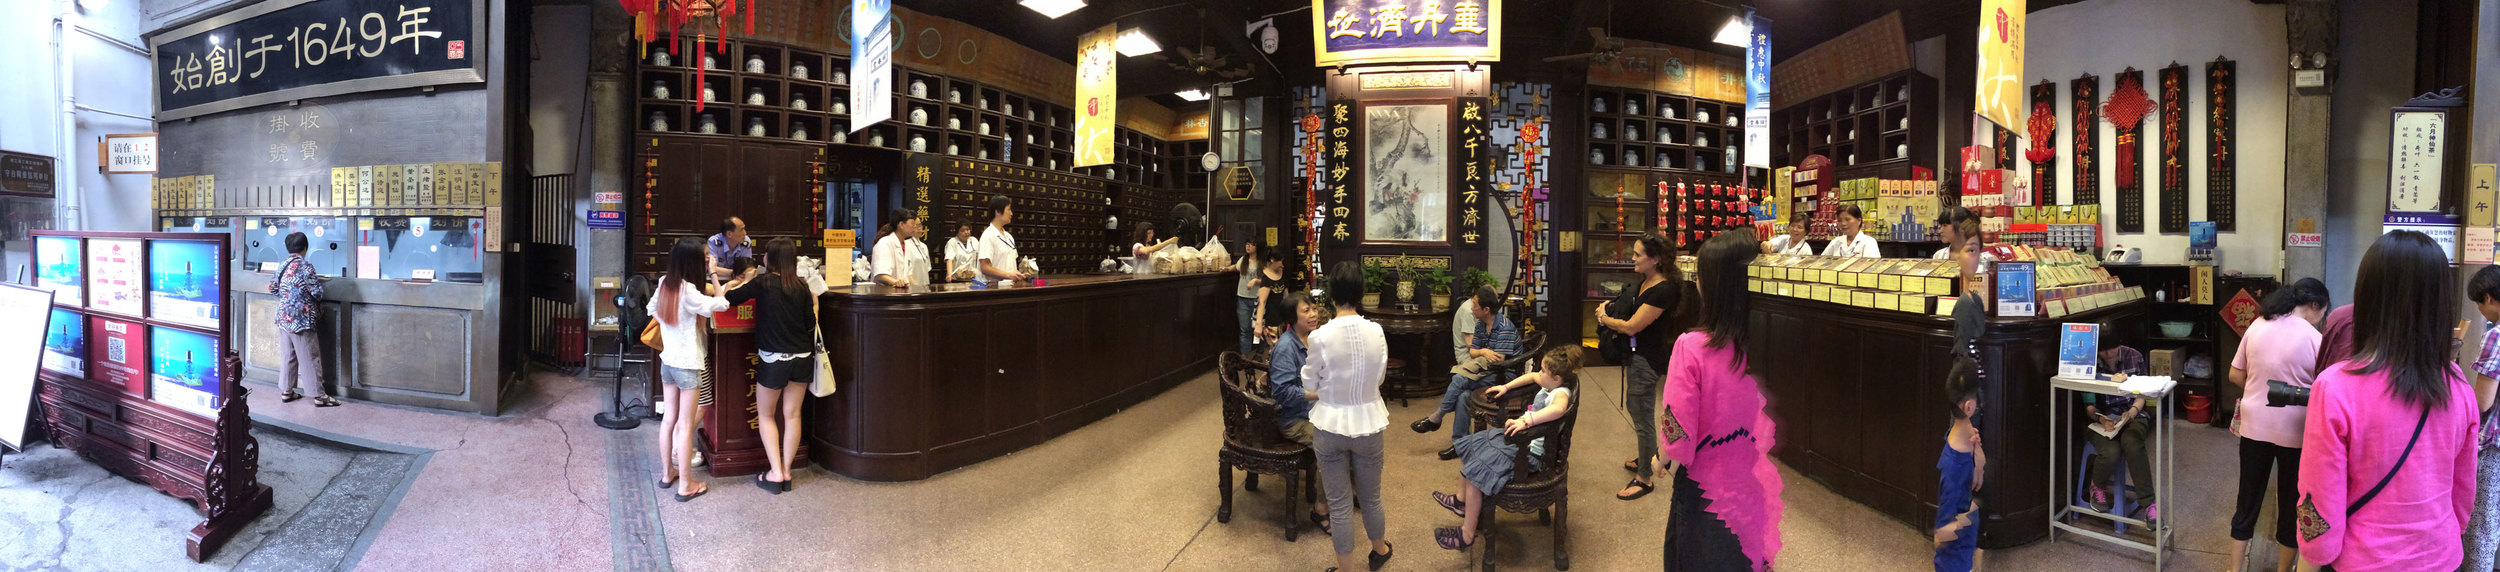 Chinese apothecary est. 1649